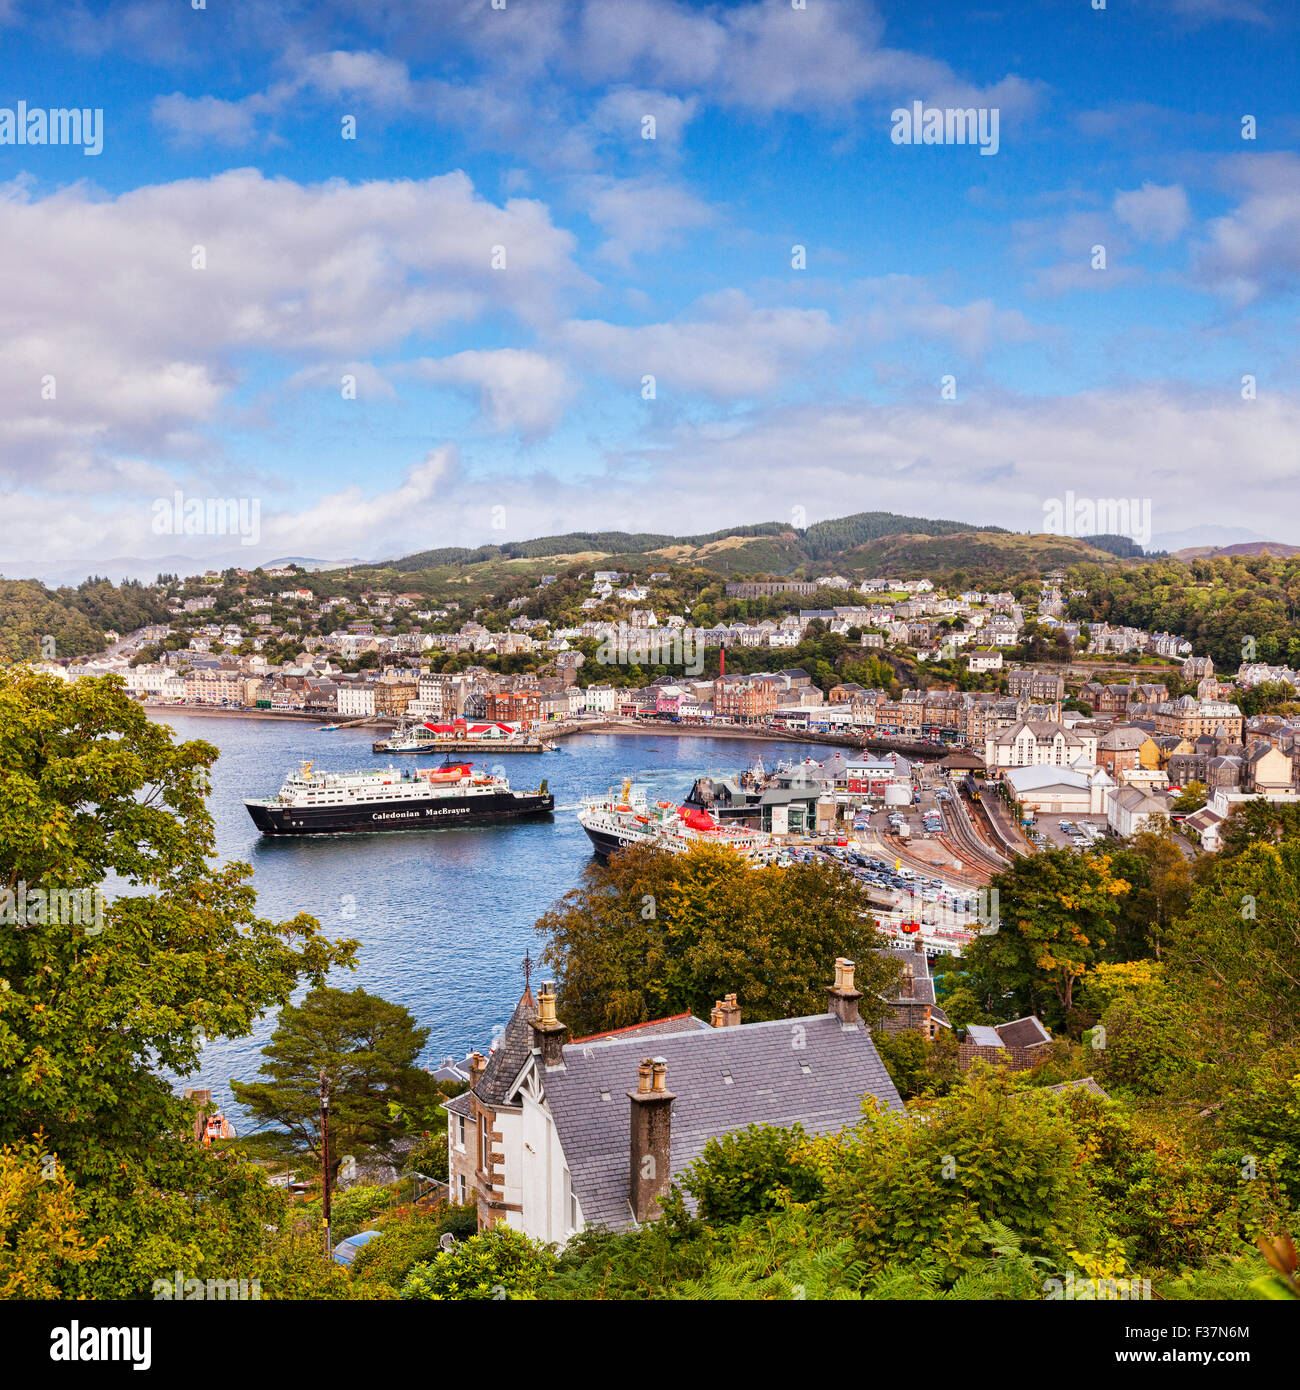 CalMac ferry Clansman leaves Oban harbour, Oban, Argyll and Bute, Scotland, UK. - Stock Image